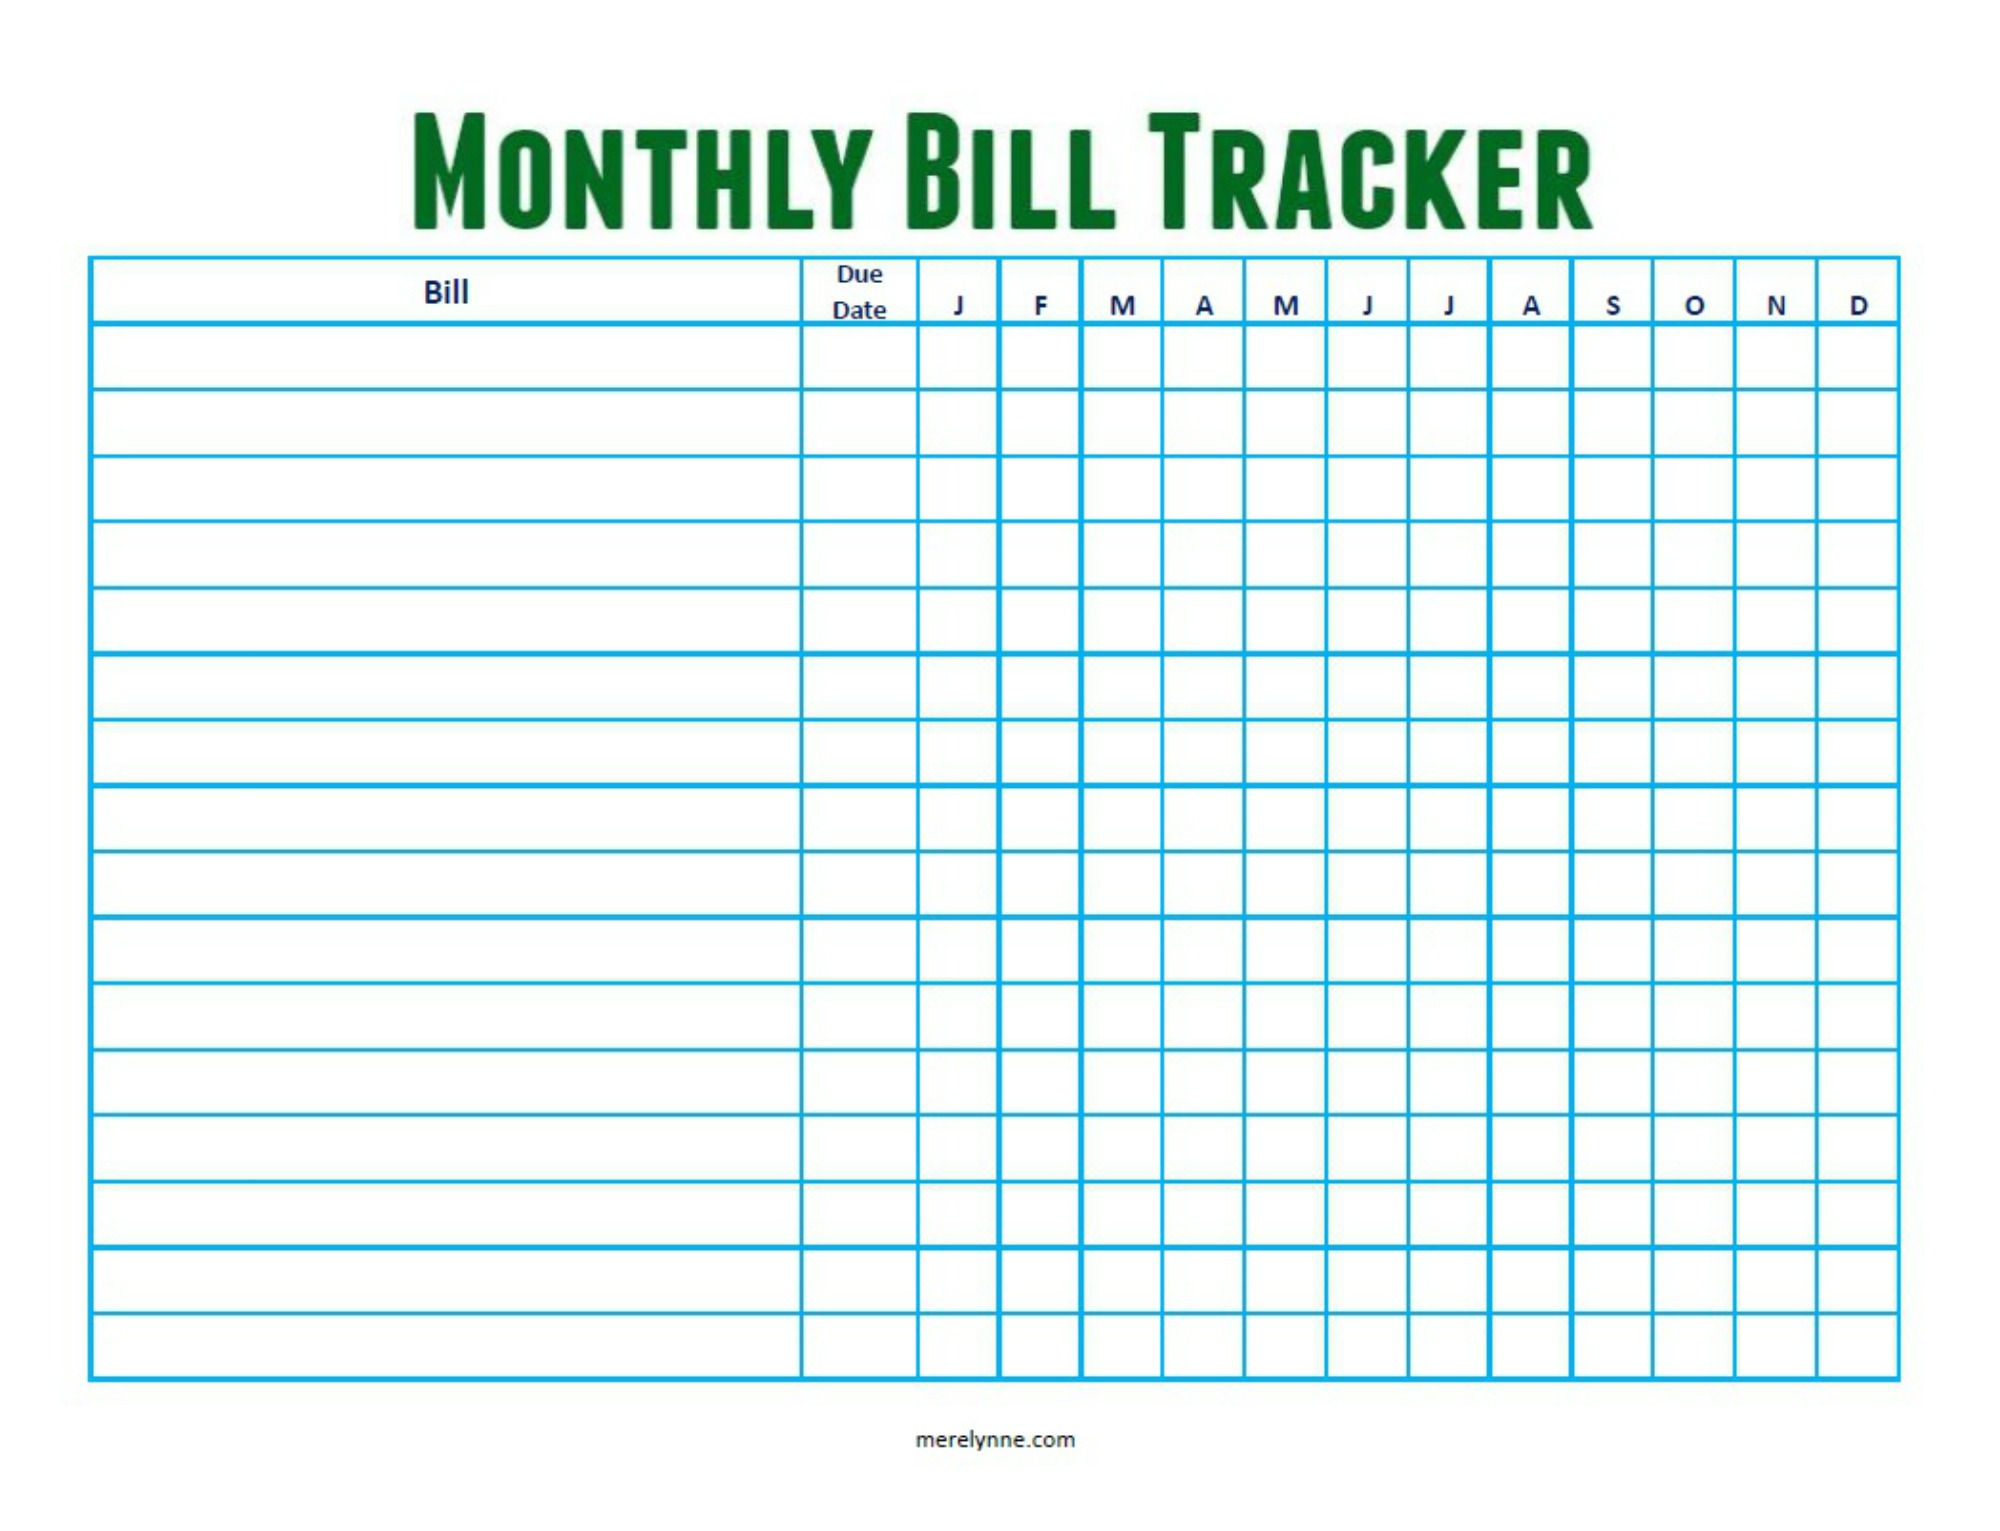 Monthly Bill Tracker From Merelynne